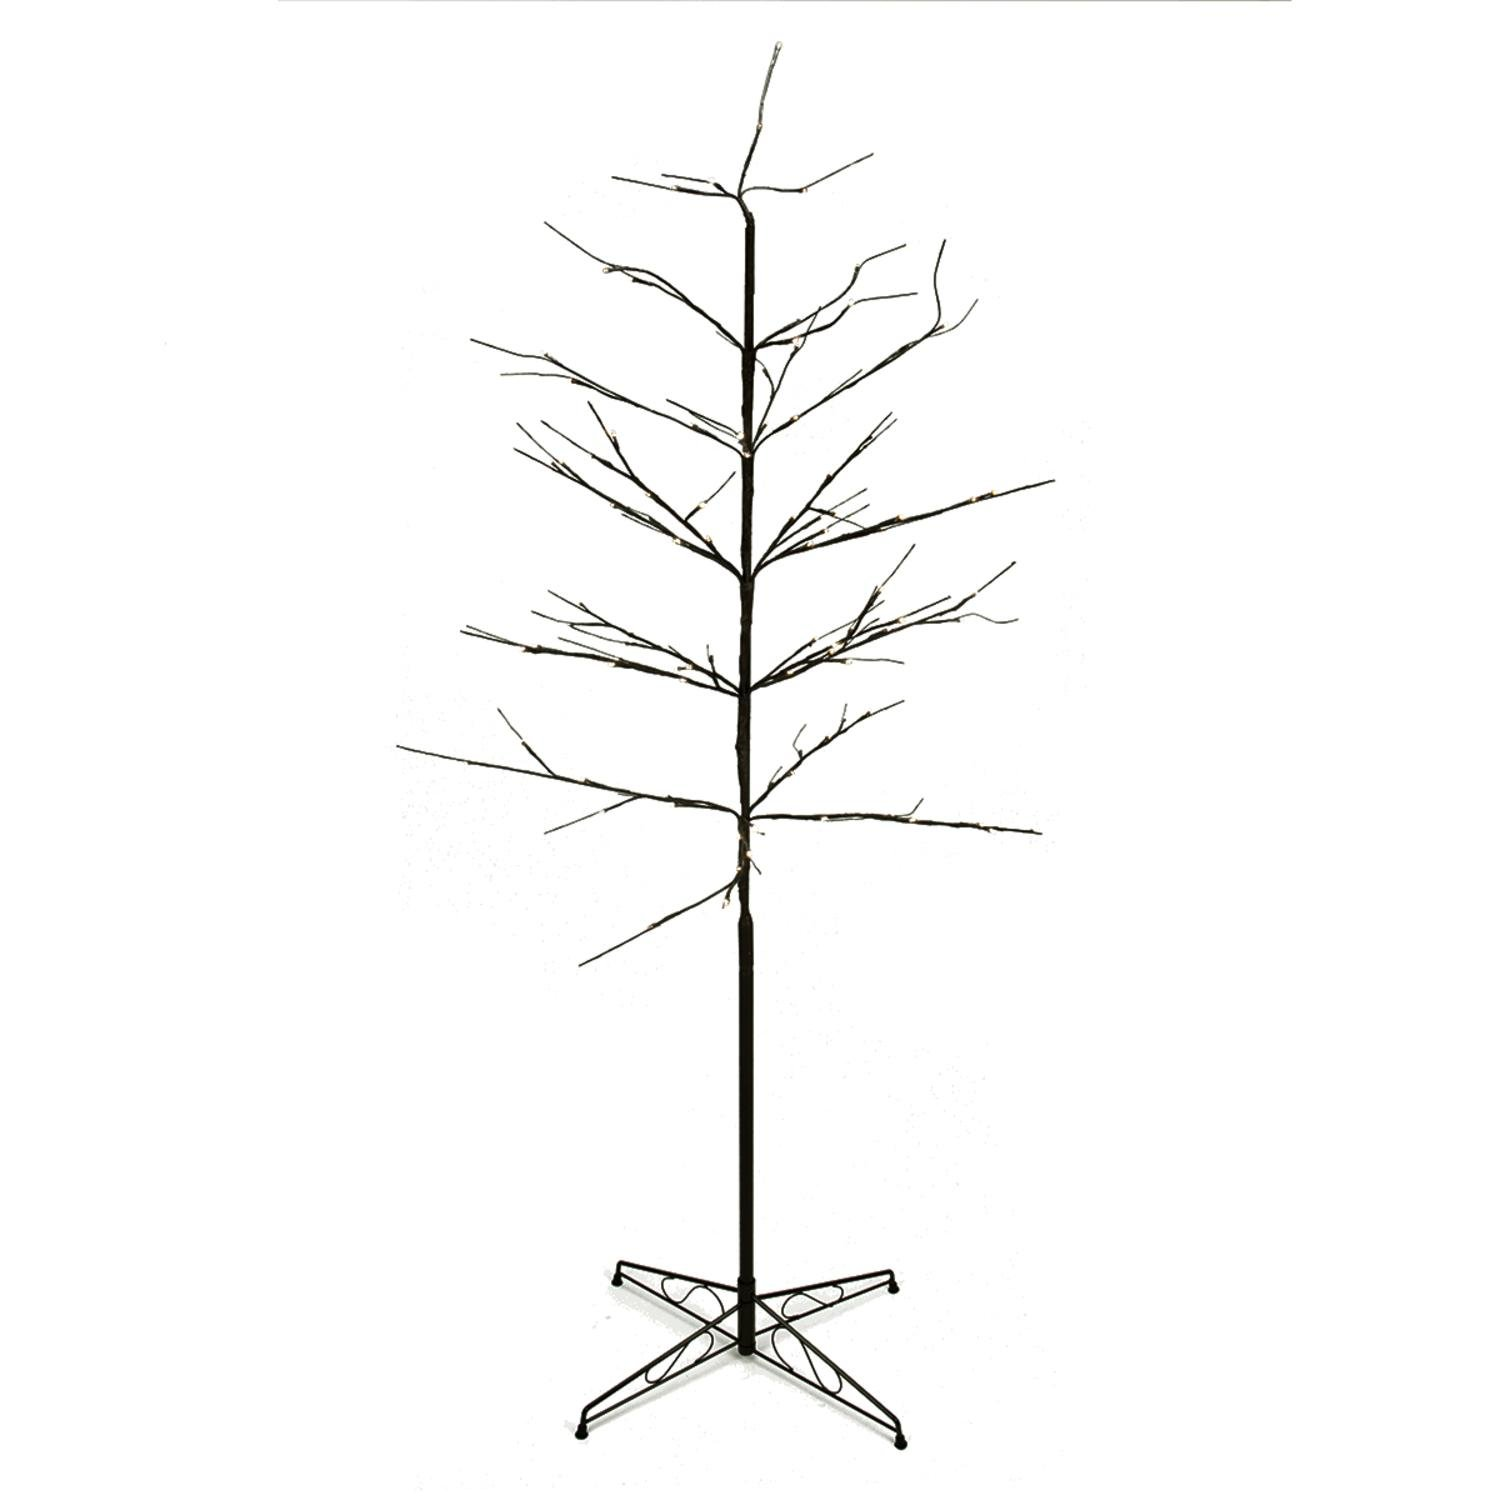 PENN 6' LED Lighted Color Combo Christmas Twig Tree Outdoor Yard Art Decoration Artificial, Brown